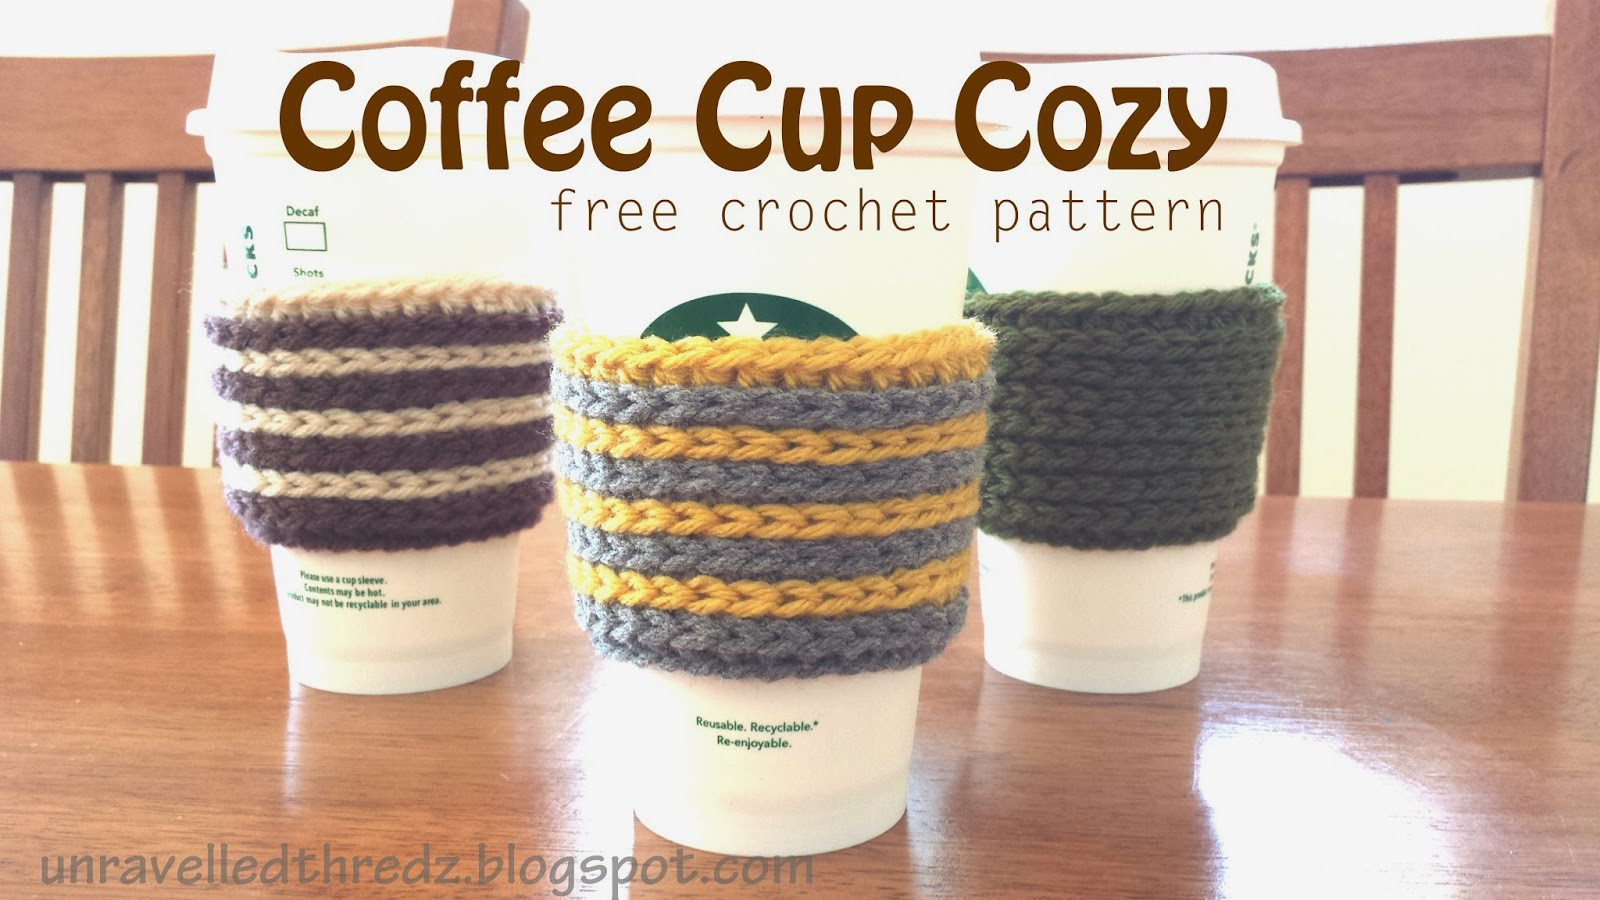 Crochet Coffee Cup Cozy Inspirational Crochet Class Beginning Crochet Sparkleez Crystles Of Crochet Coffee Cup Cozy Best Of Craftdrawer Crafts Free Easy to Crochet Mug Cozy Patterns